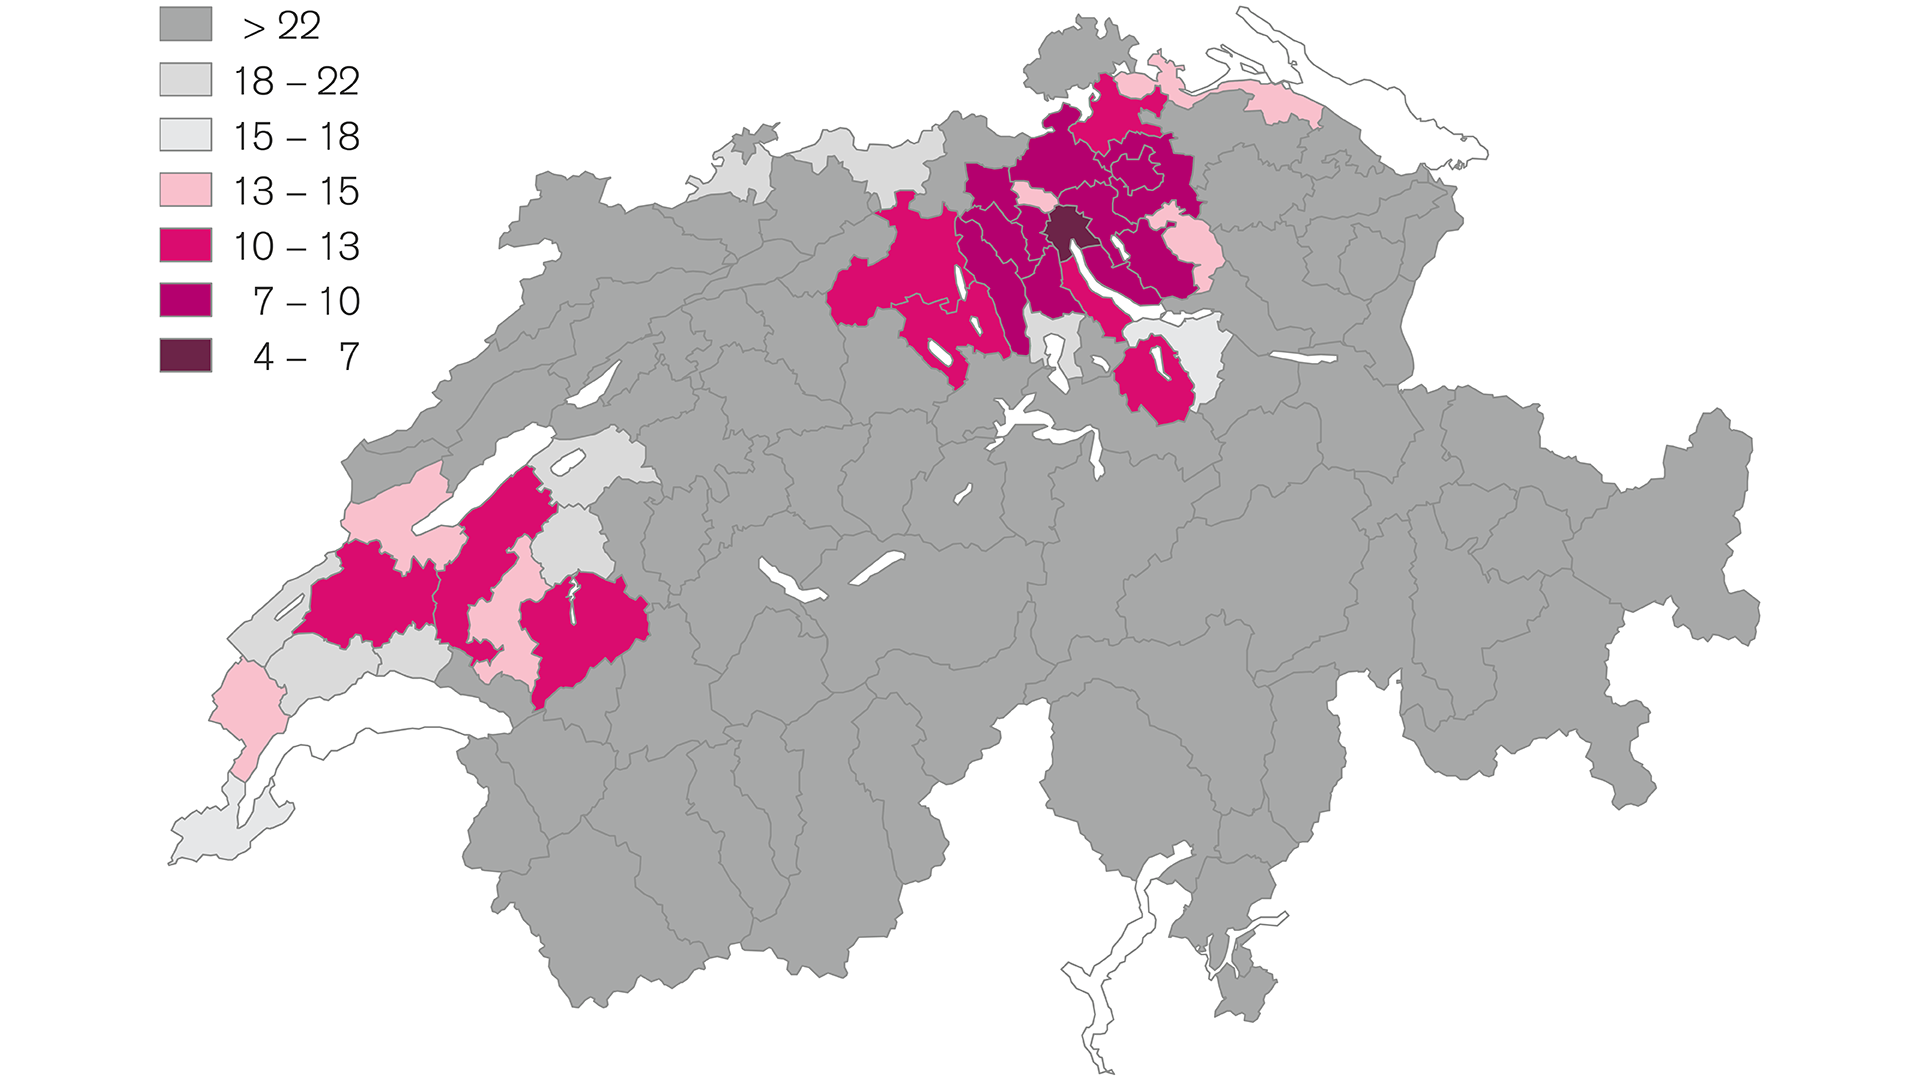 Building land in Switzerland is most scarce in Zurich